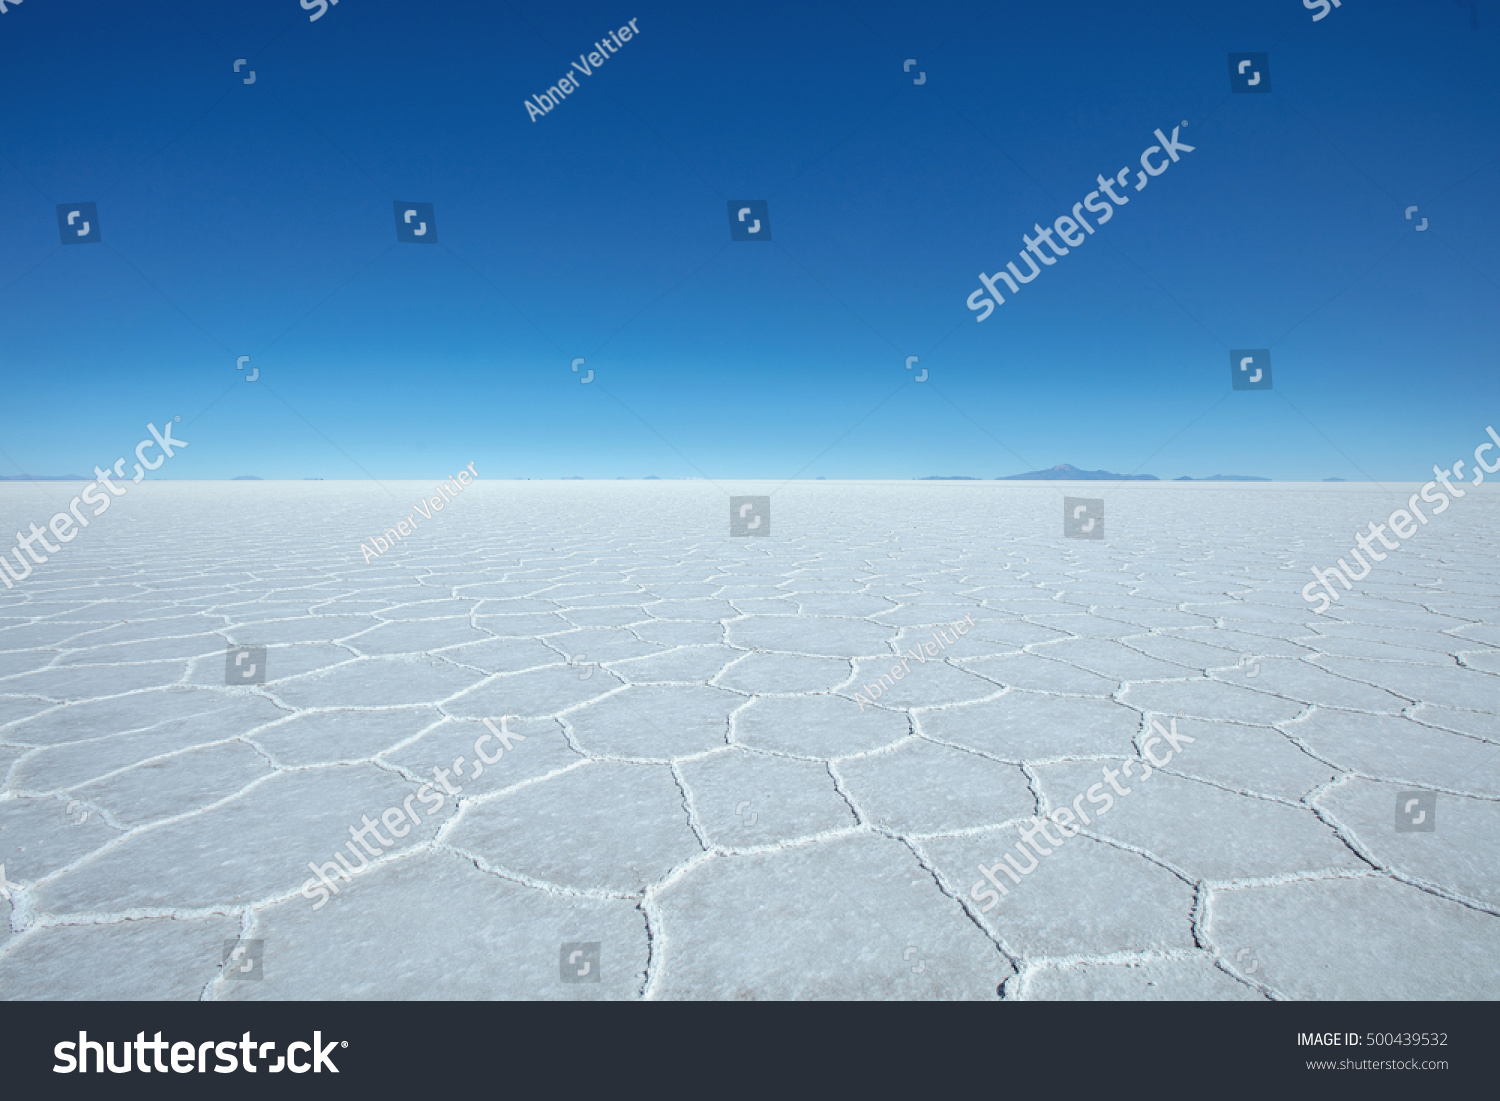 salt flat dating site That's one word to describe the small dutch caribbean island of bonaire, which lies some 50 miles north of the venezuelan coast and is home to the solar salt works of.